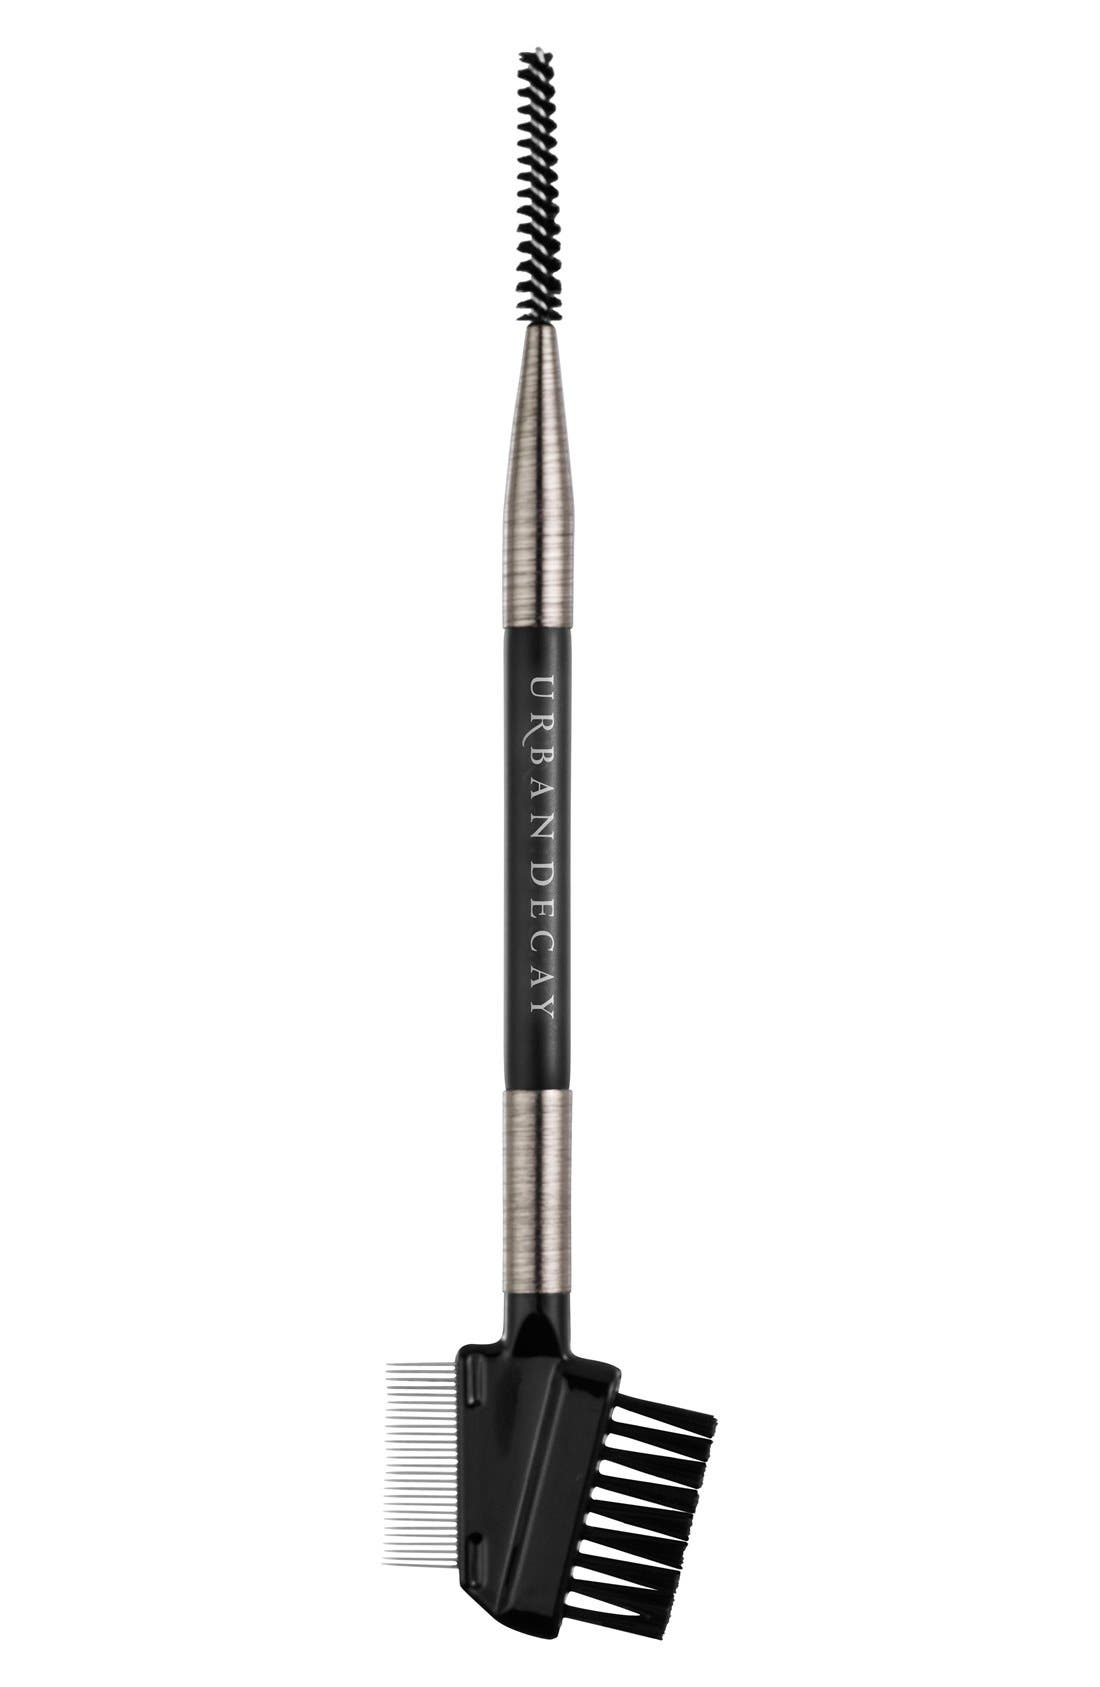 Urban Decay 'Pro' Essential Eye Tool